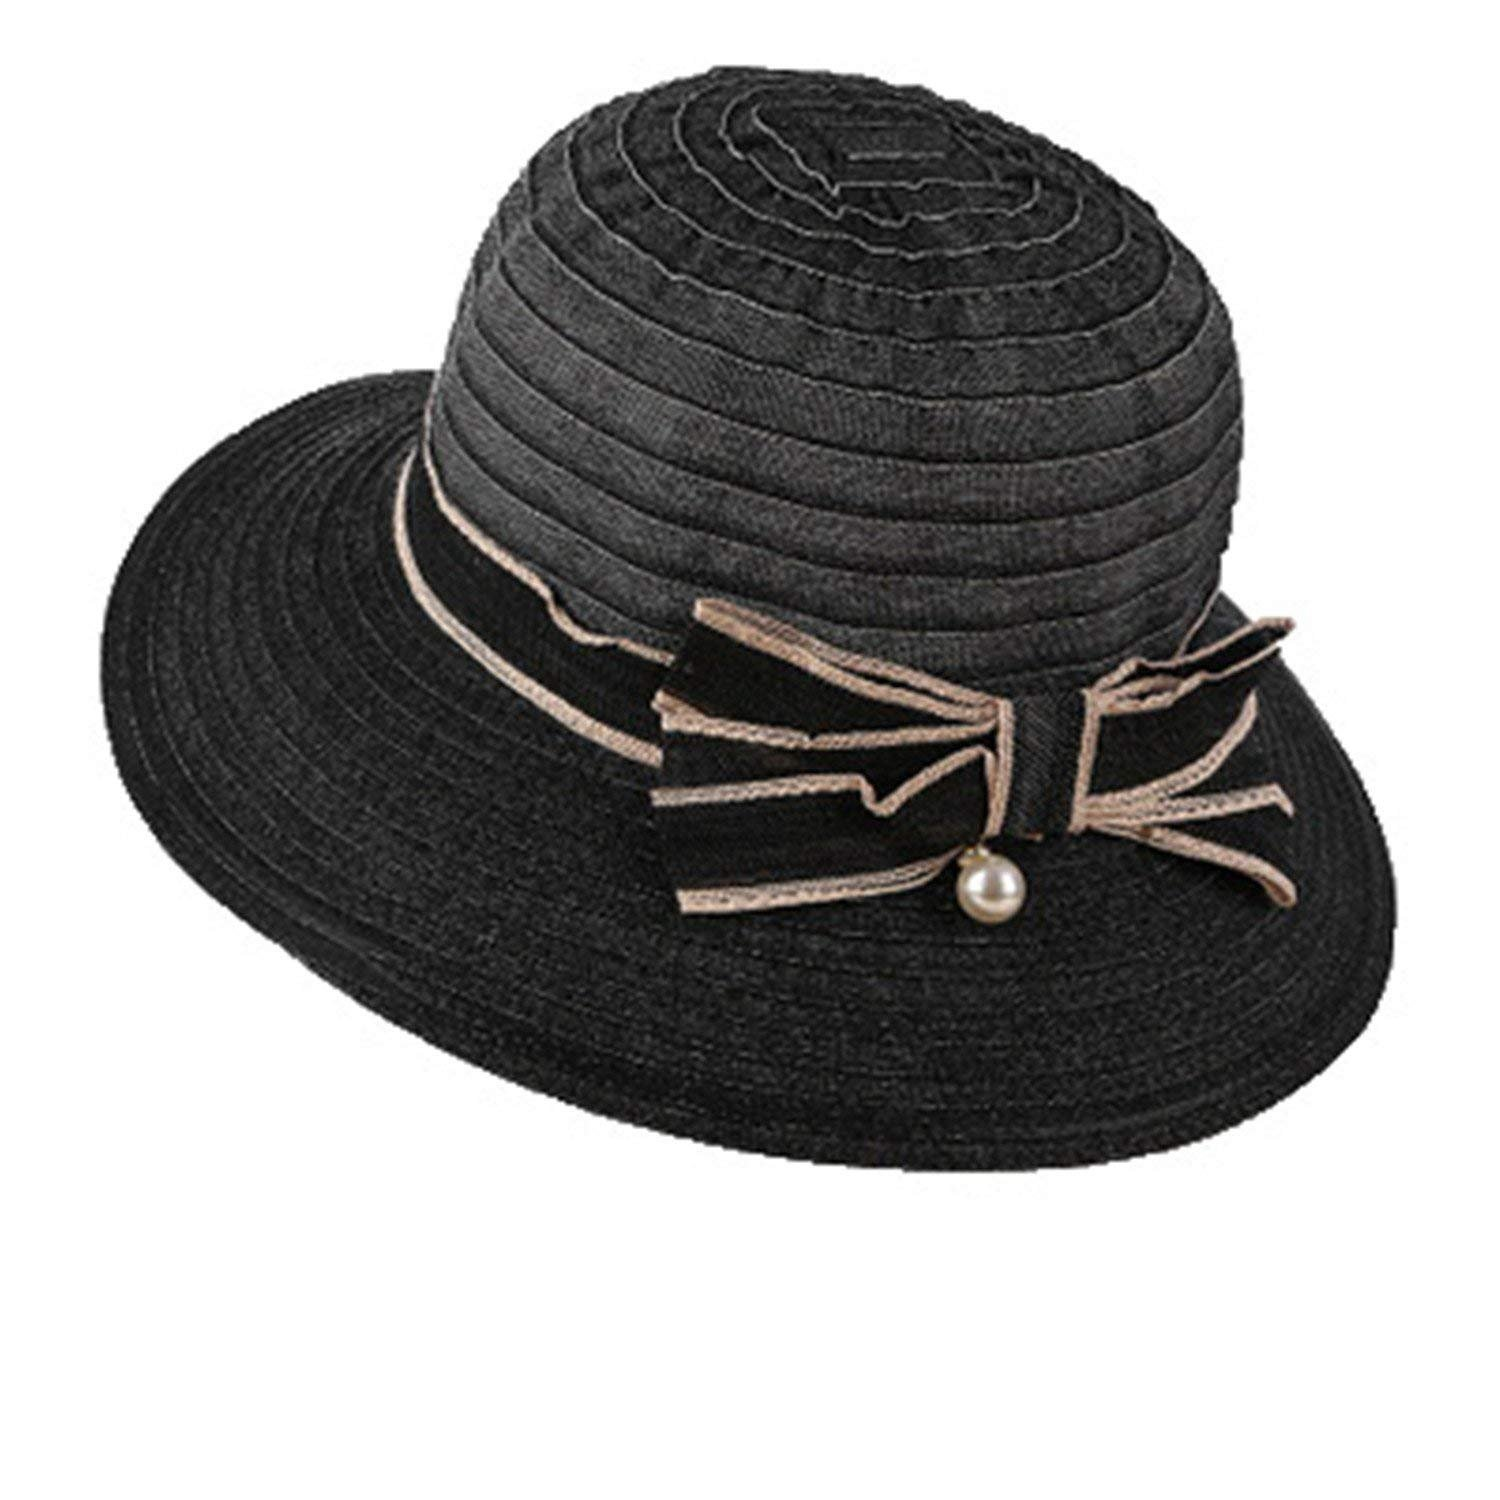 bac6d4b71c4 Amazon.com  2018 Ladies Summer Hats with Brim New Brand Straw Hats for Women  Beach Sun Hats Sun Protection Chapeau Femme